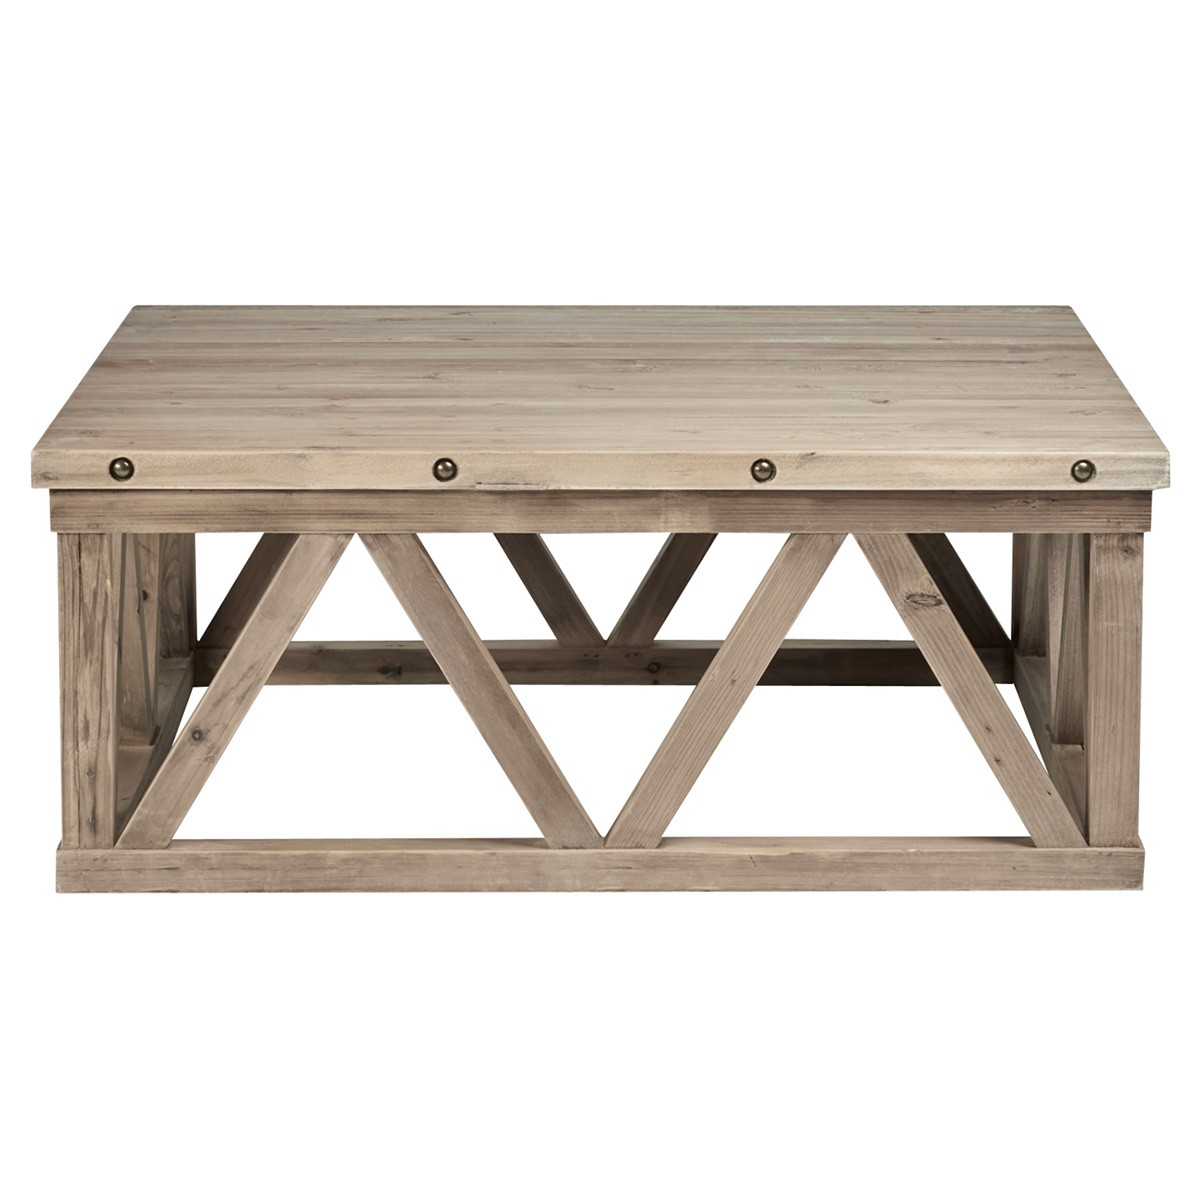 East Hamptons Recycled Pine Timber Square Coffee Table, 100cm